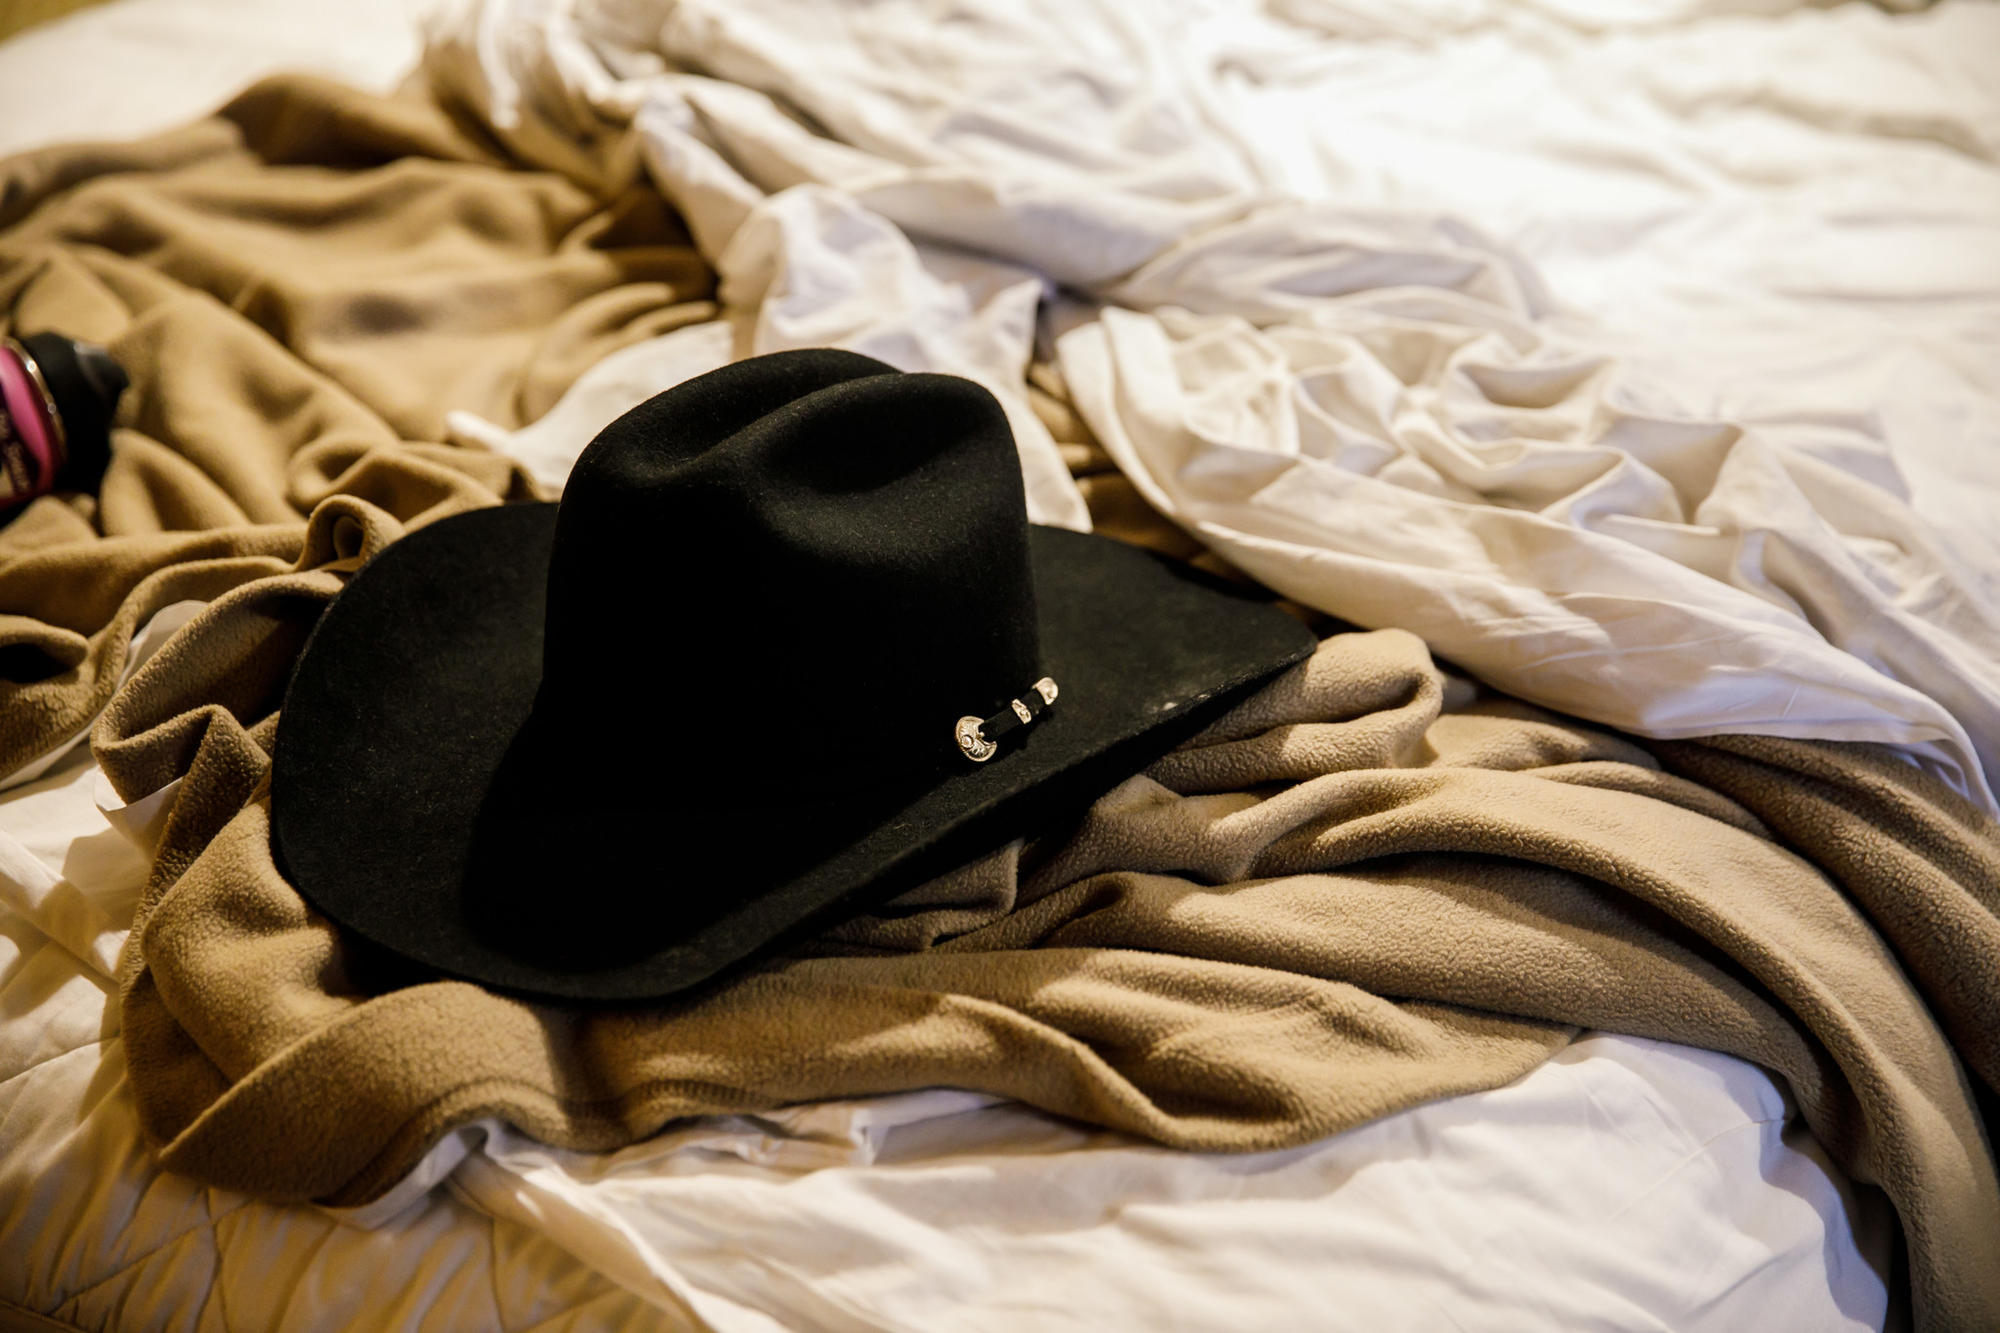 Brian MacKinnon retrieved Adrian Murfitt's new cowboy hat and took it back to their hotel room.